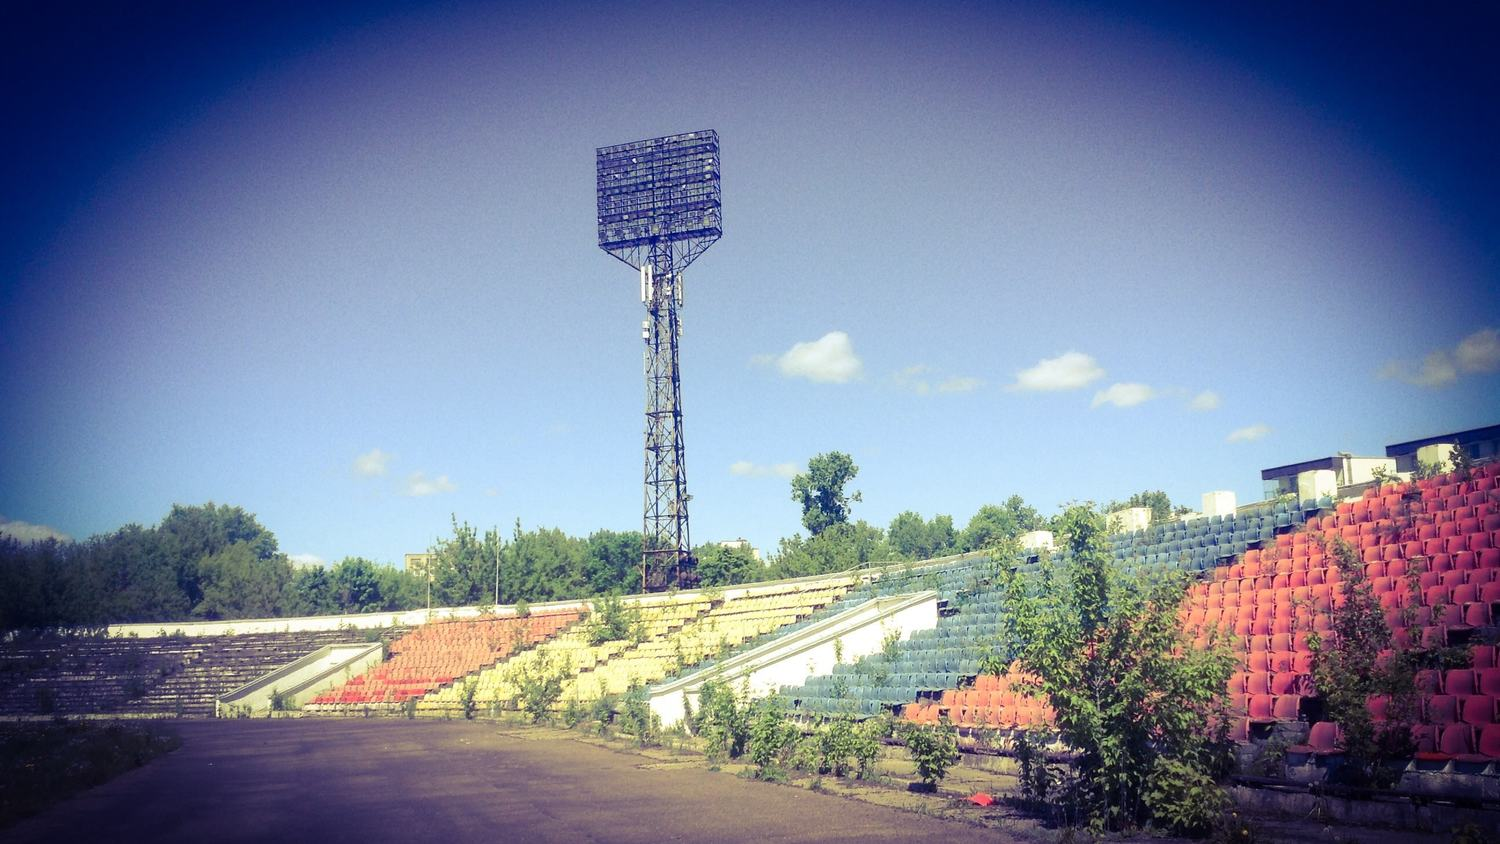 Zalgiris Stadium – A Monument To Soviet Football